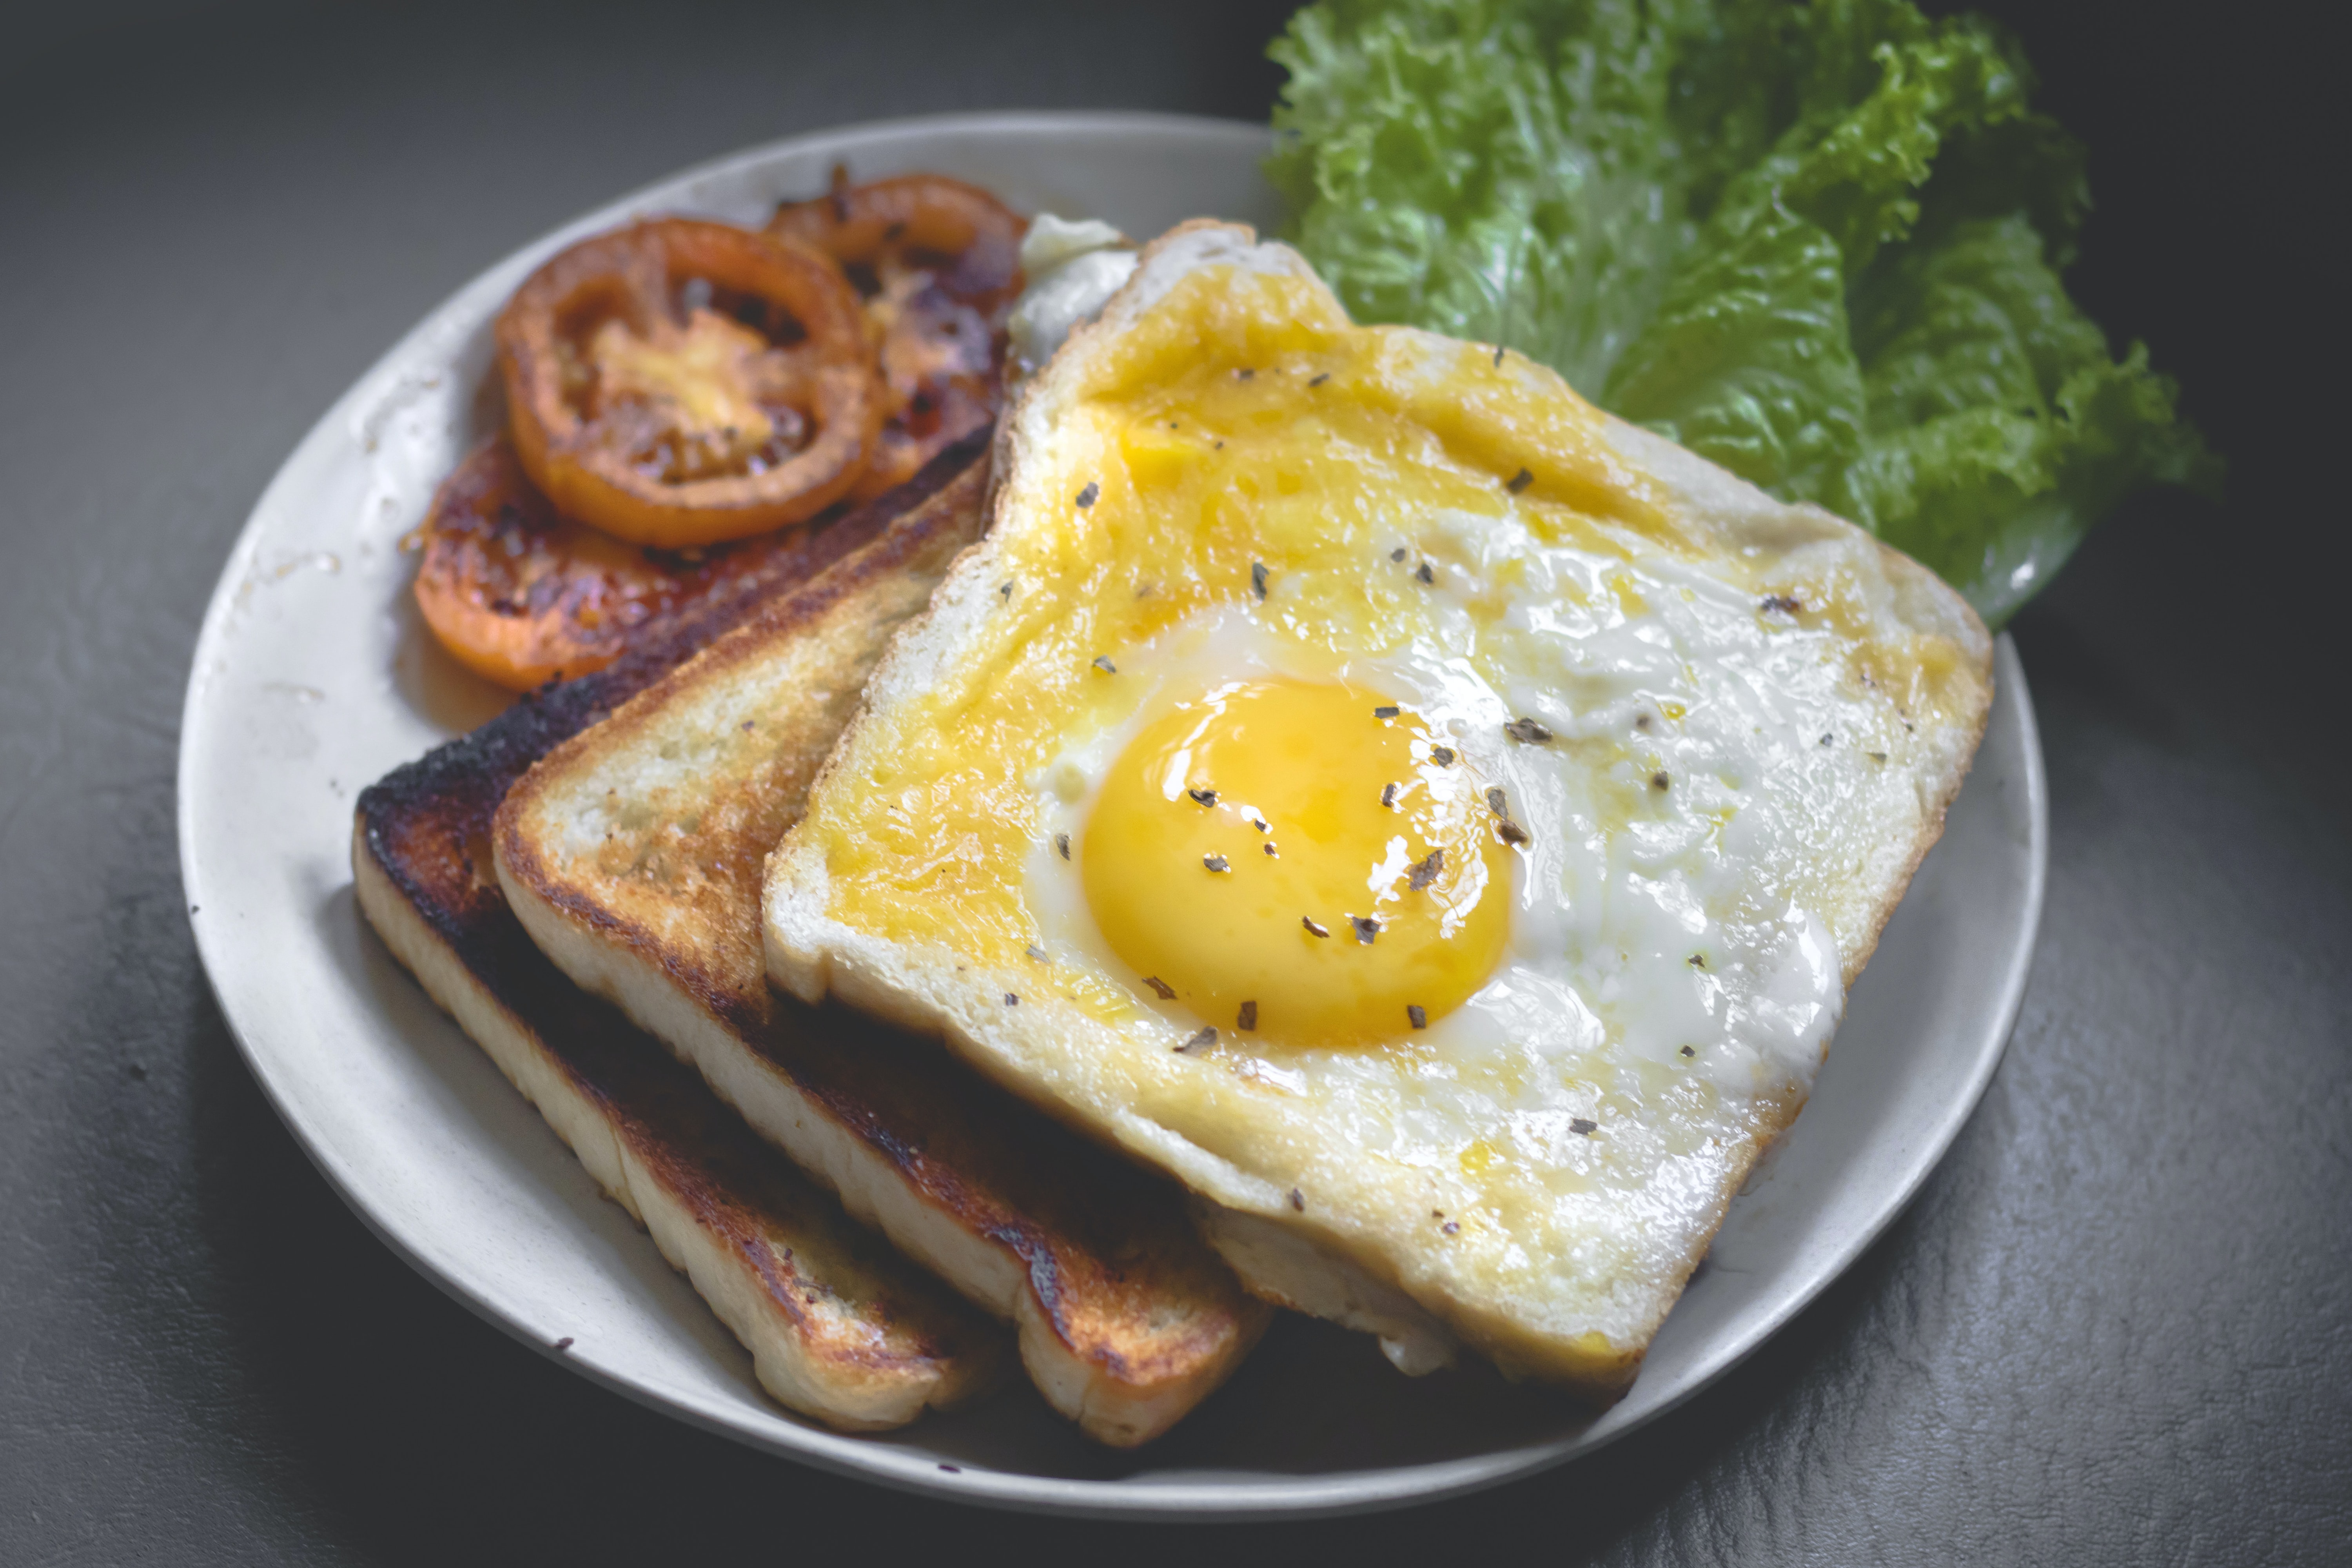 toasted bread with fried egg and tomato